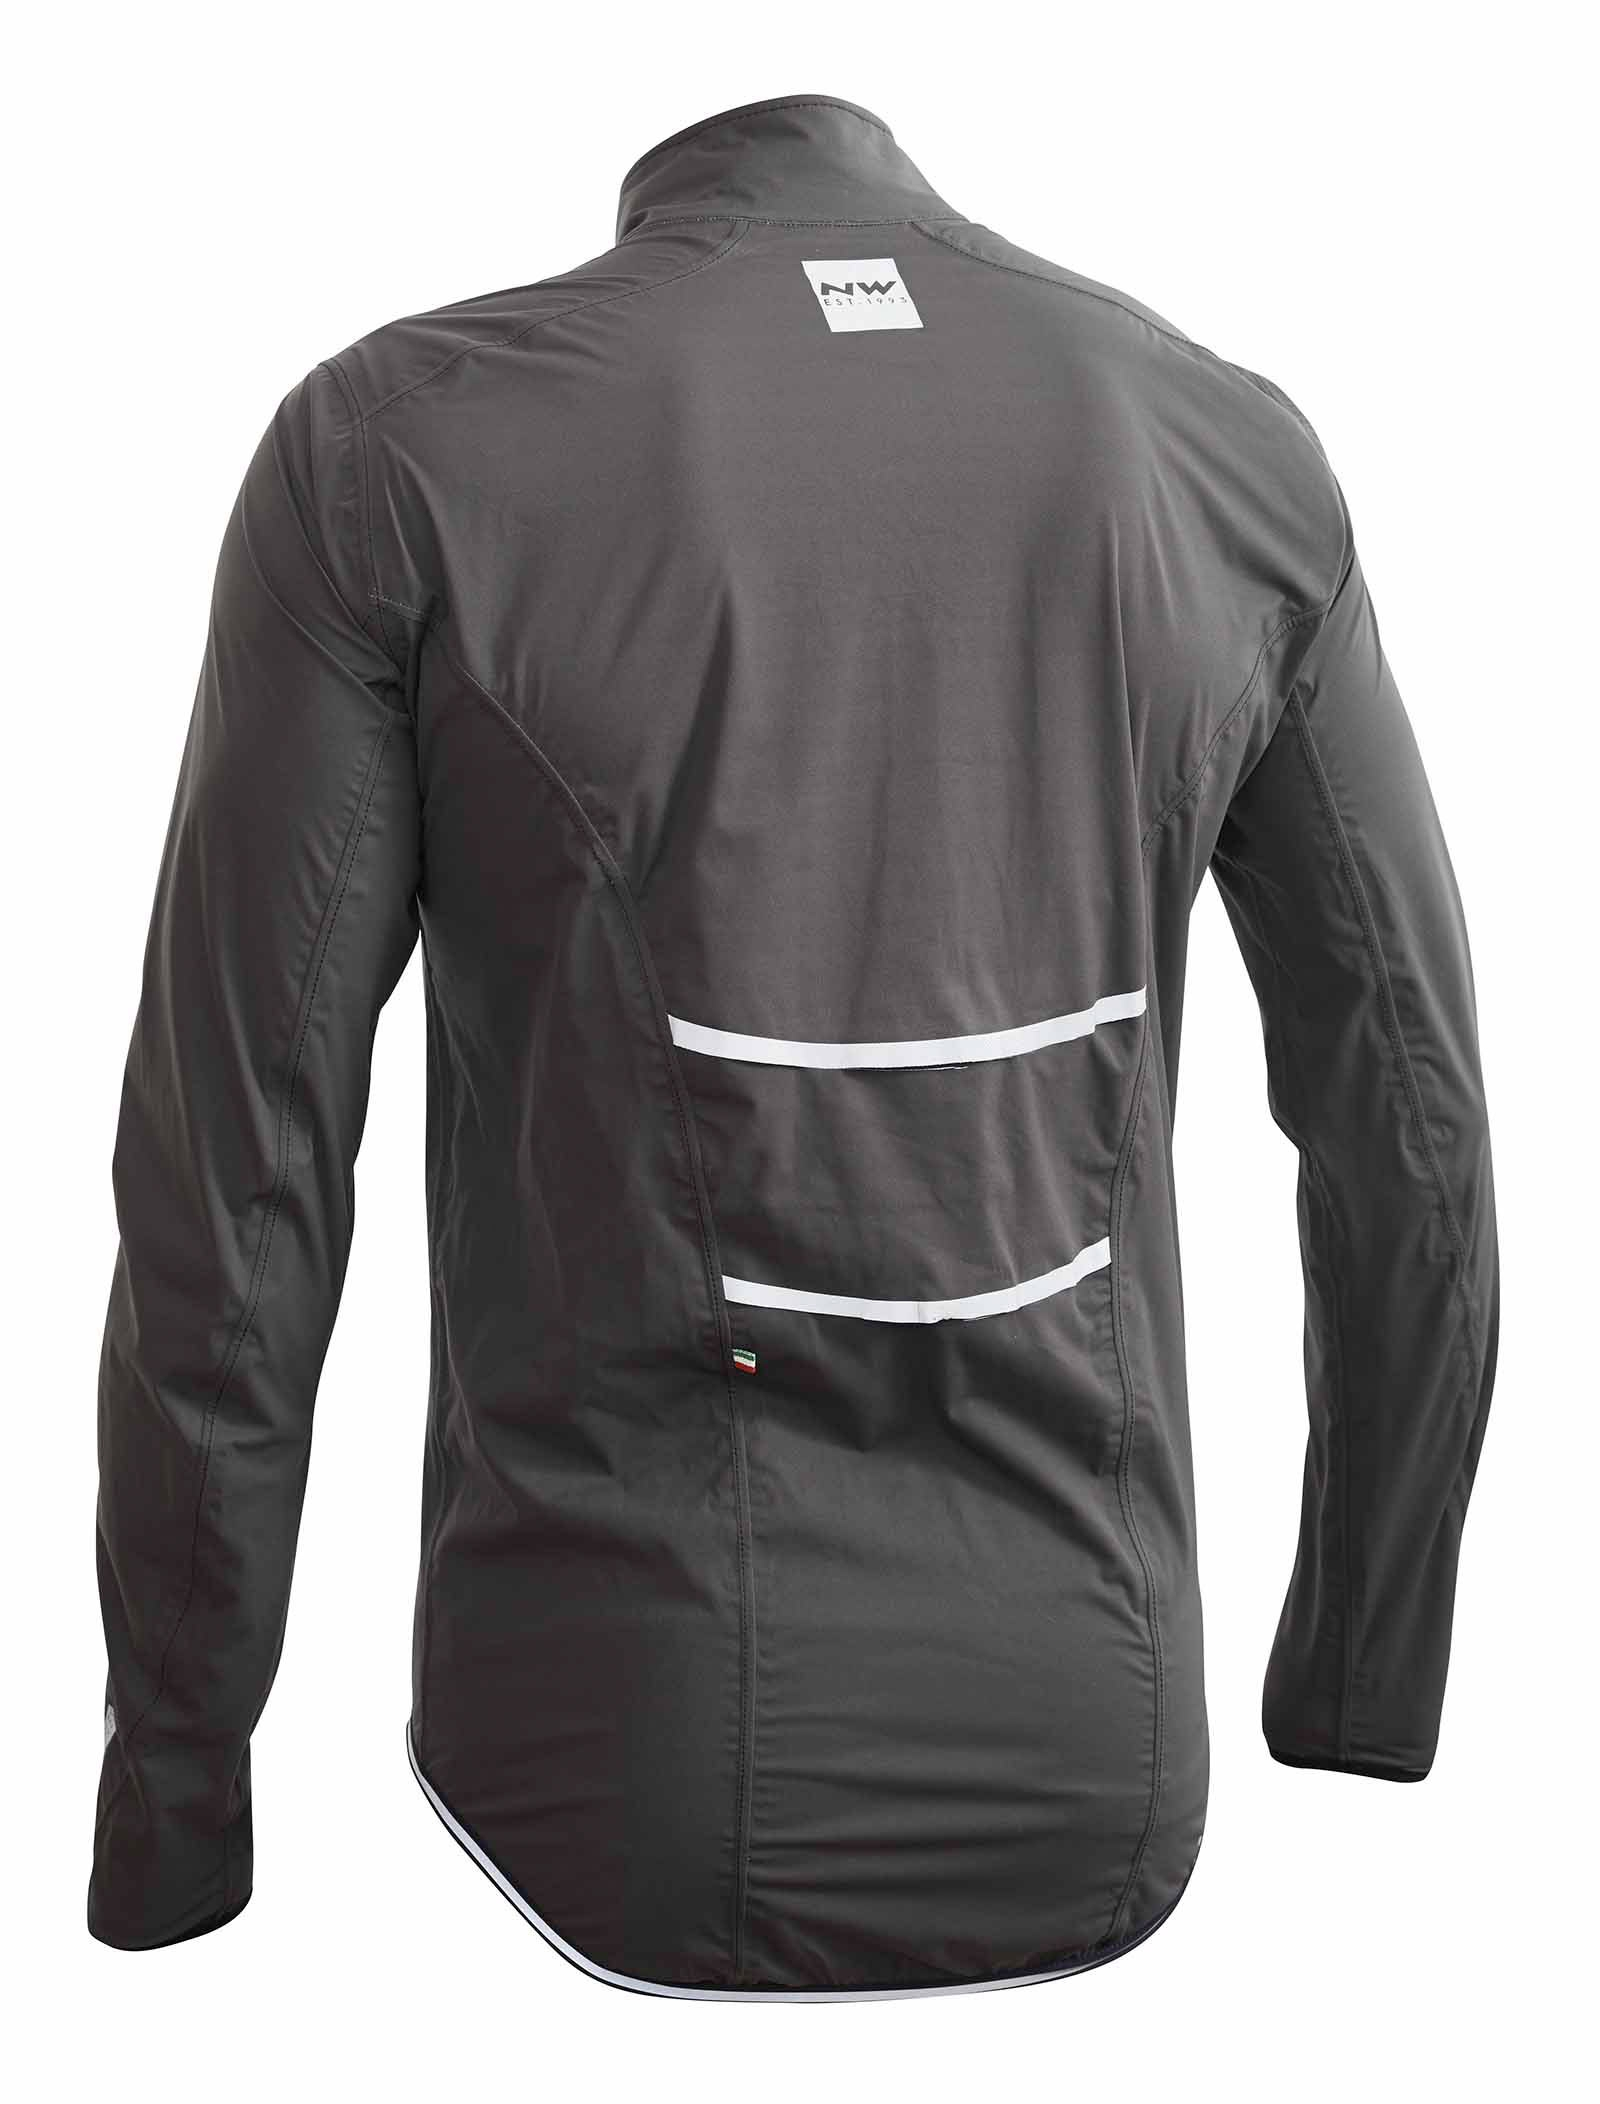 NORTHWAVE Man cycling jacket RAINSKIN SHIELD anthracite grey